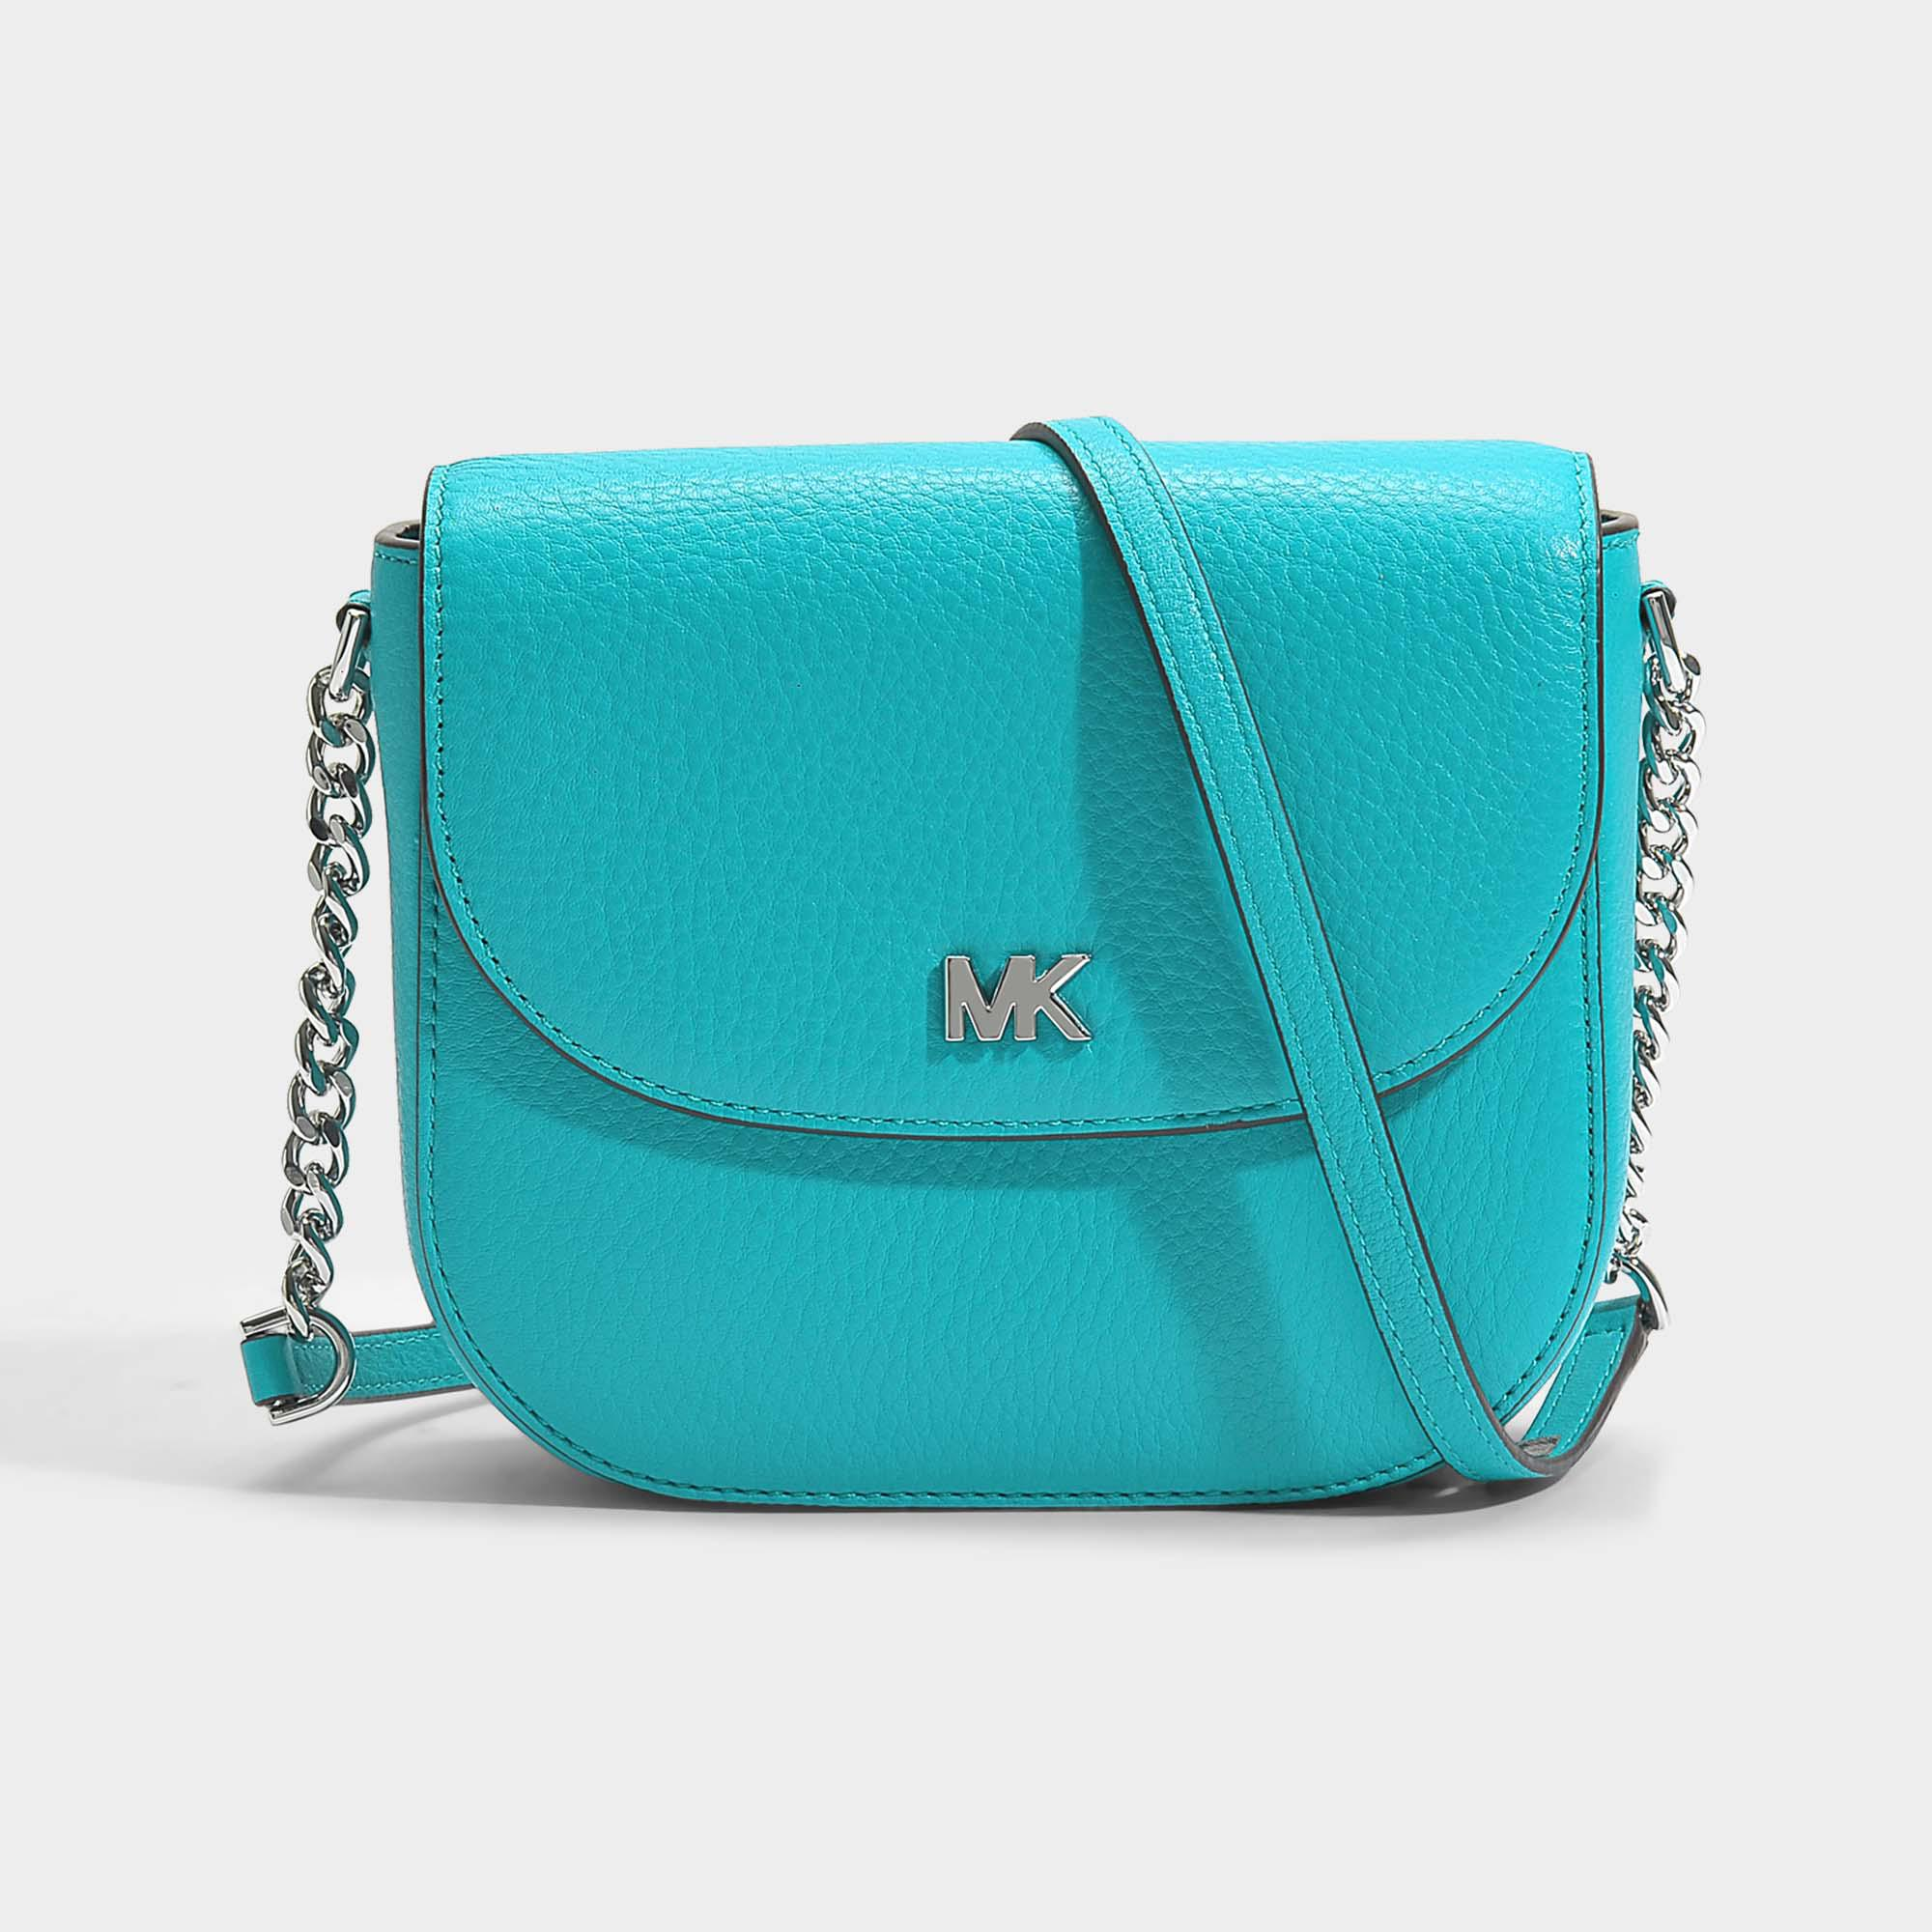 134bb0a85605 Lyst - MICHAEL Michael Kors Half Dome Crossbody Bag In Tile Blue ...